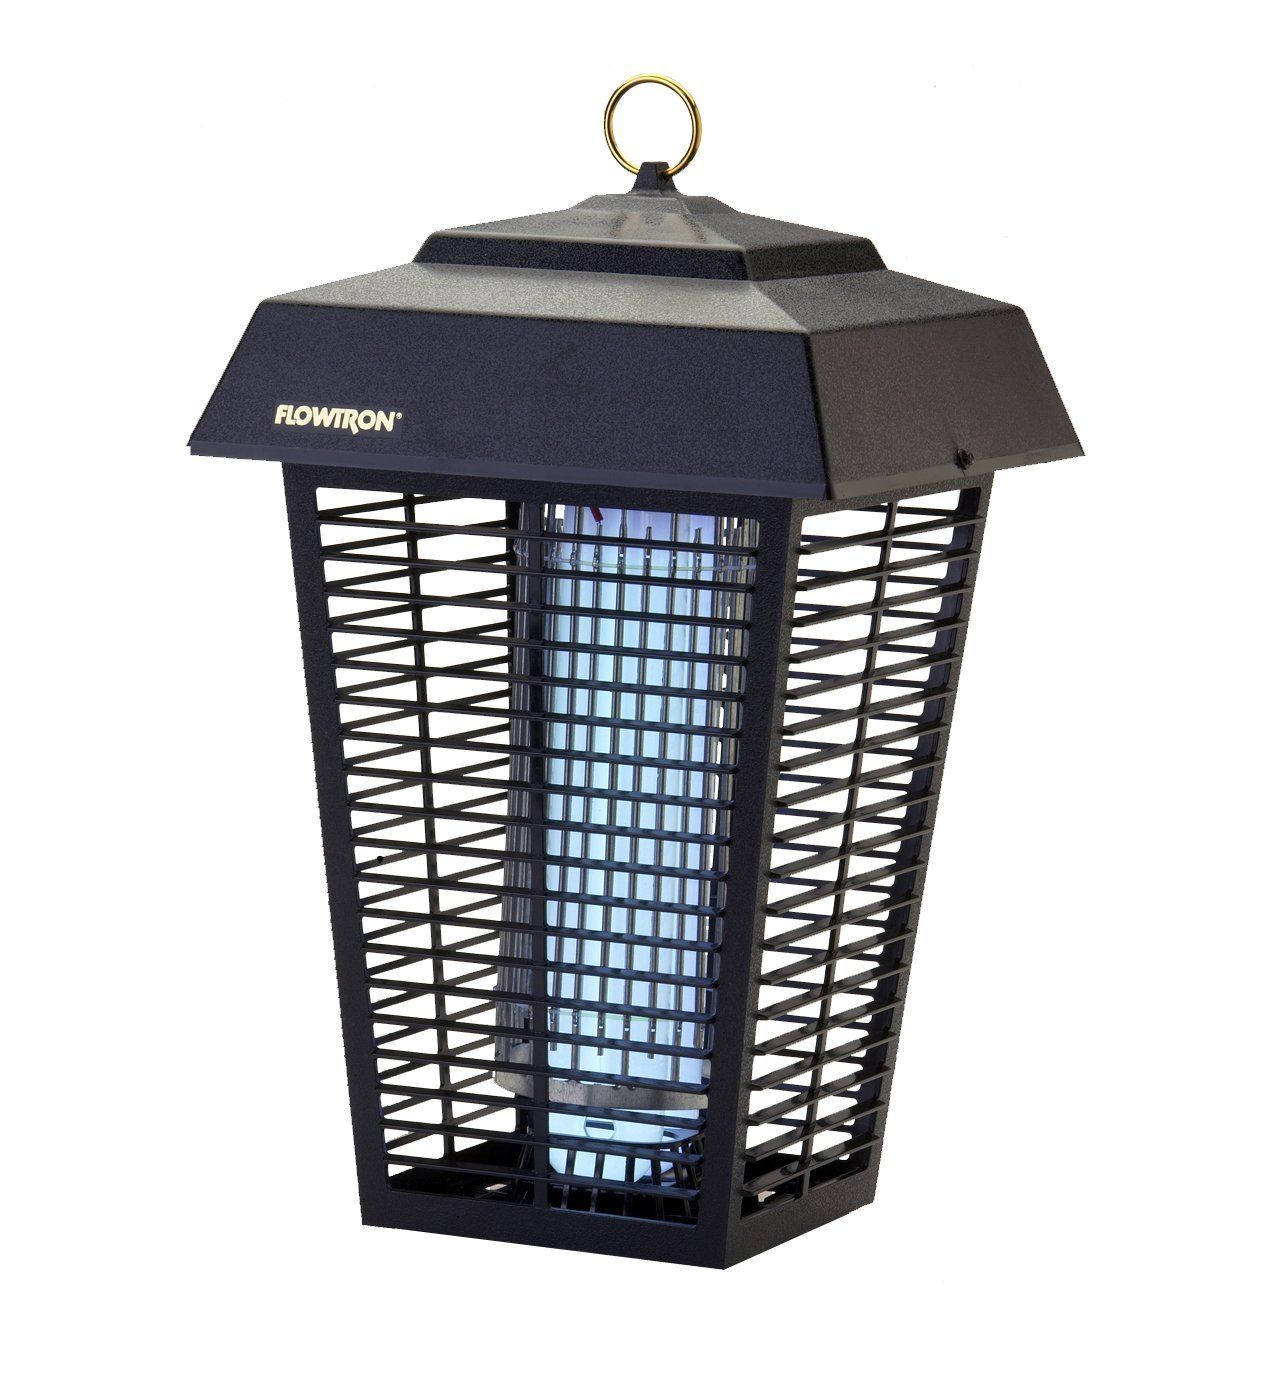 Amazon.com : Flowtron BK 80D 80 Watt Electronic Insect Killer, 1 1/2 Acre  Coverage : Home Insect Zappers : Patio, Lawn U0026 Garden